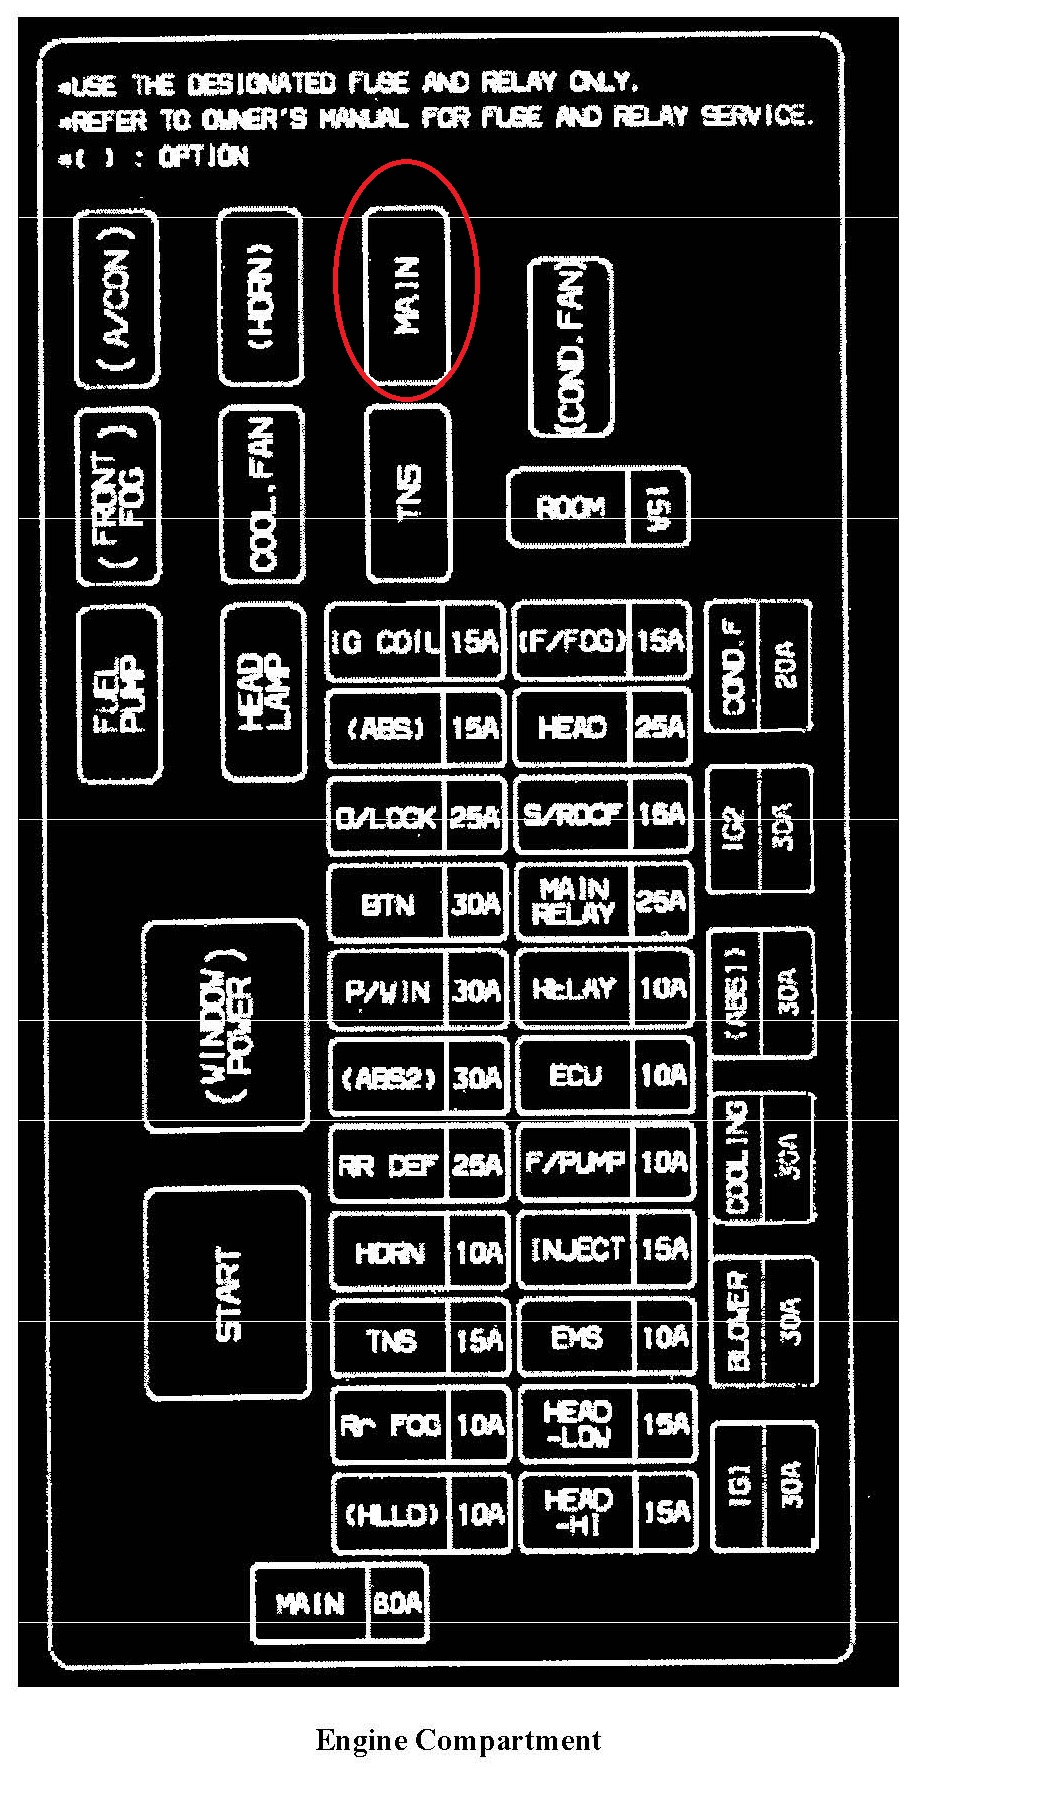 2008 kia sorento fuse box diagram imageresizertool com. Black Bedroom Furniture Sets. Home Design Ideas